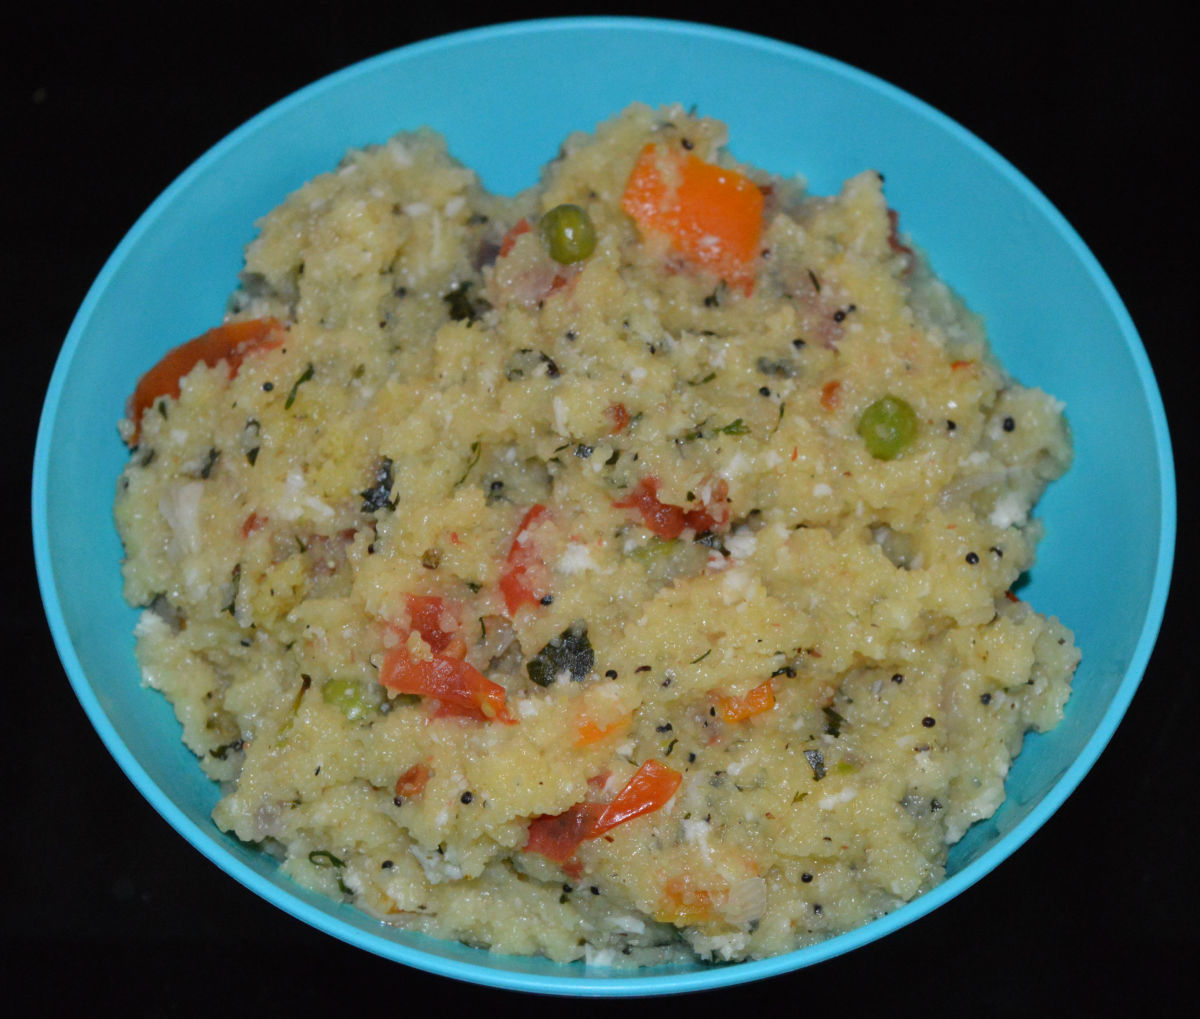 Upma made with instant upma mix